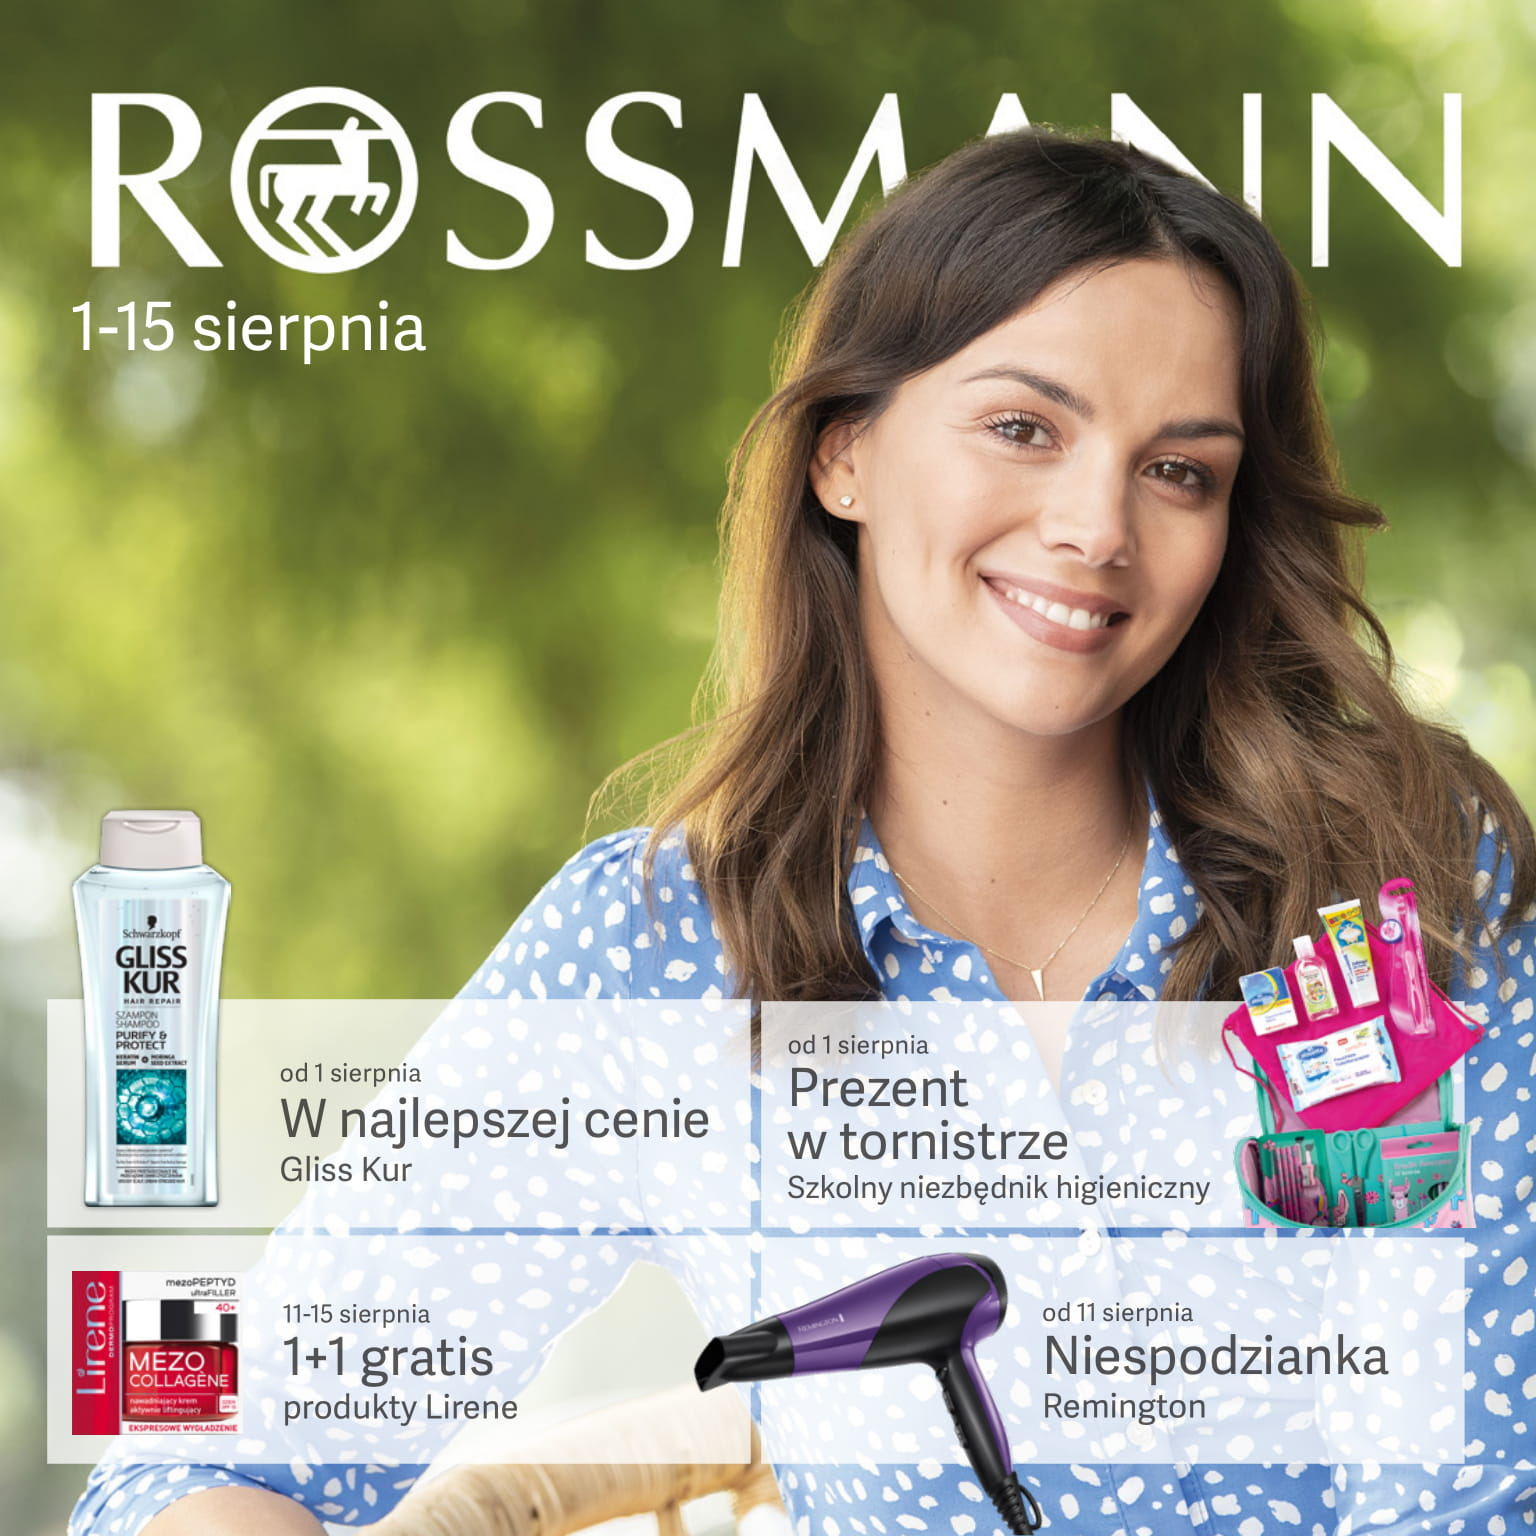 Rossmann gazetka od 01.08 do 15.08.2019